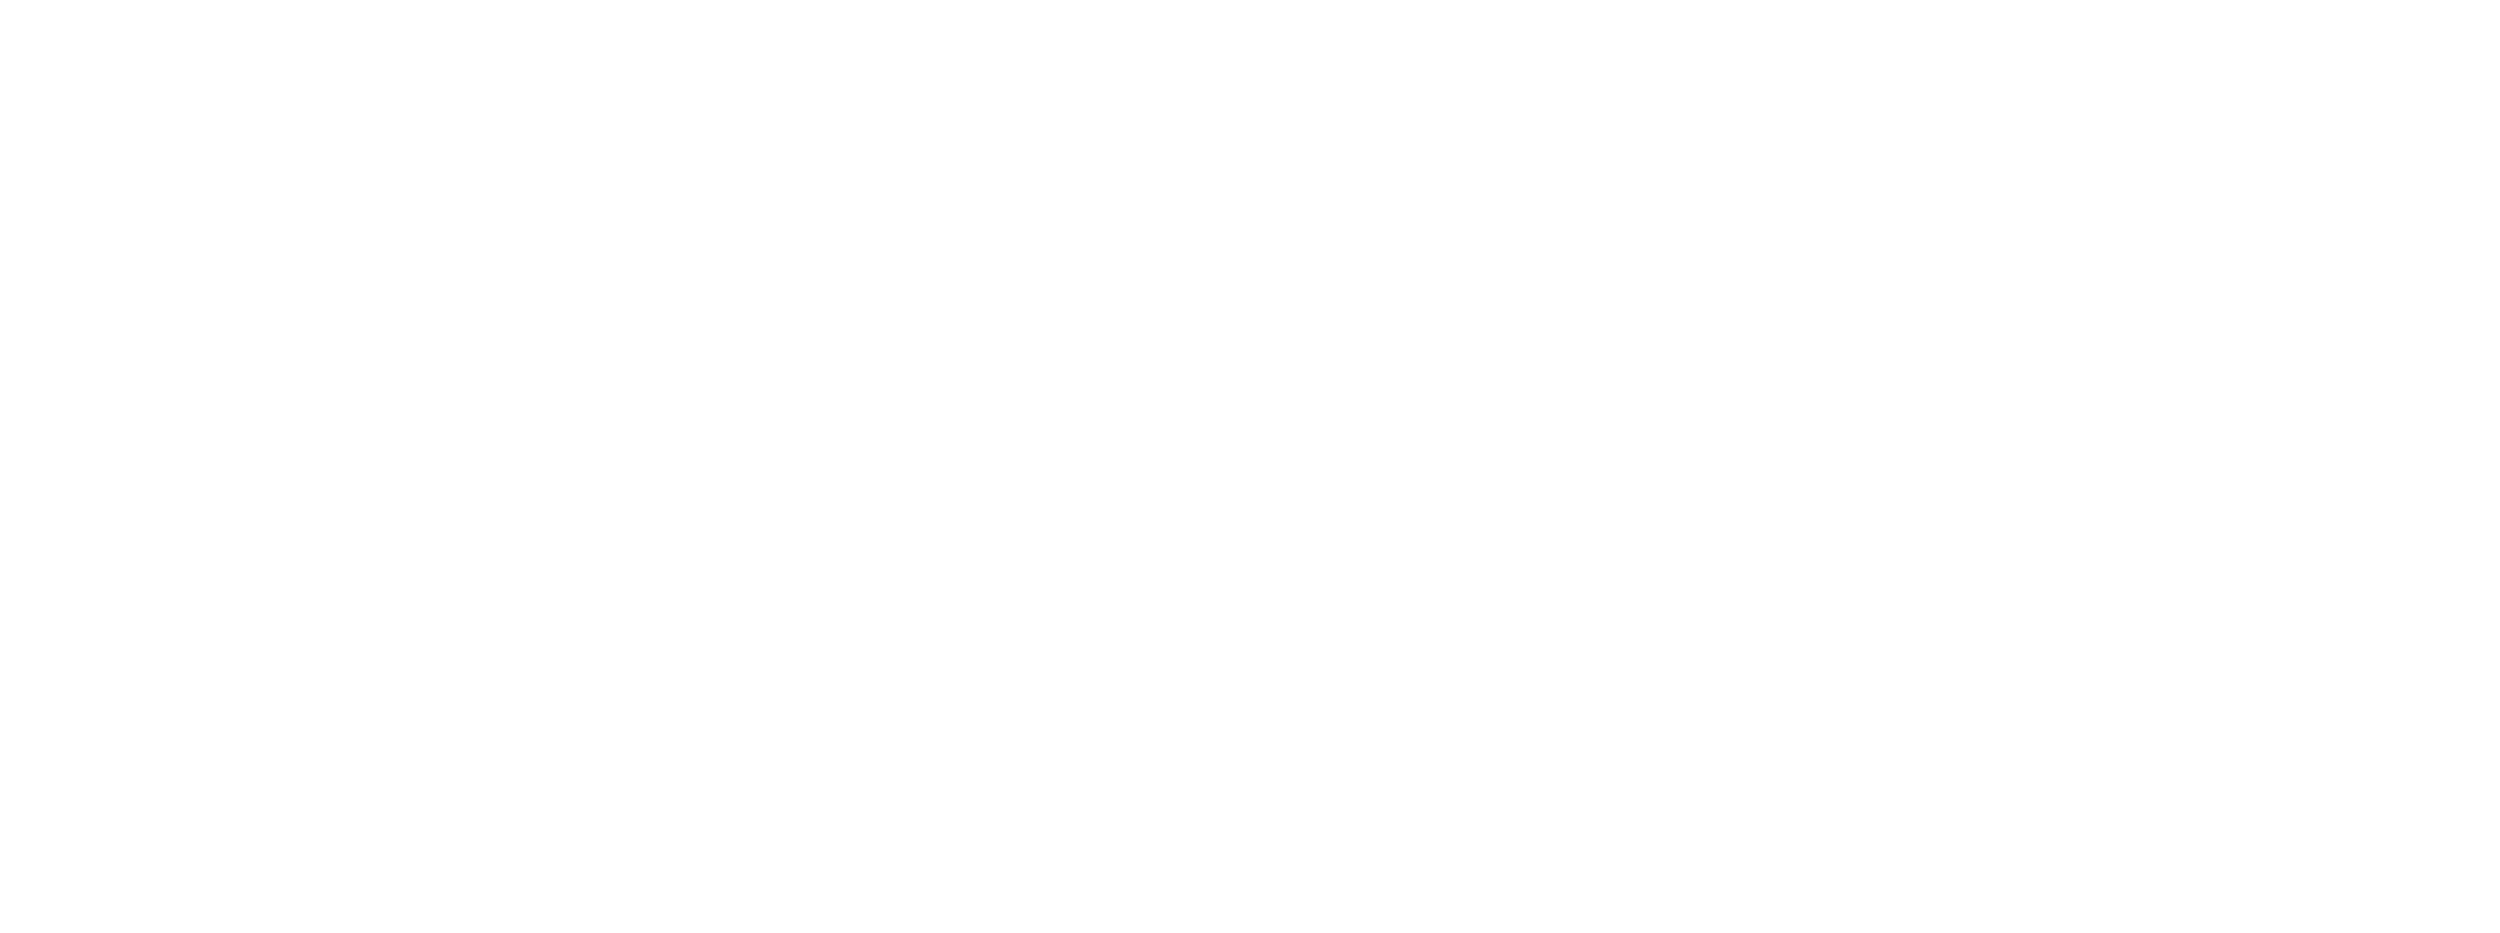 Final Whiskey Fest Logo-04.png